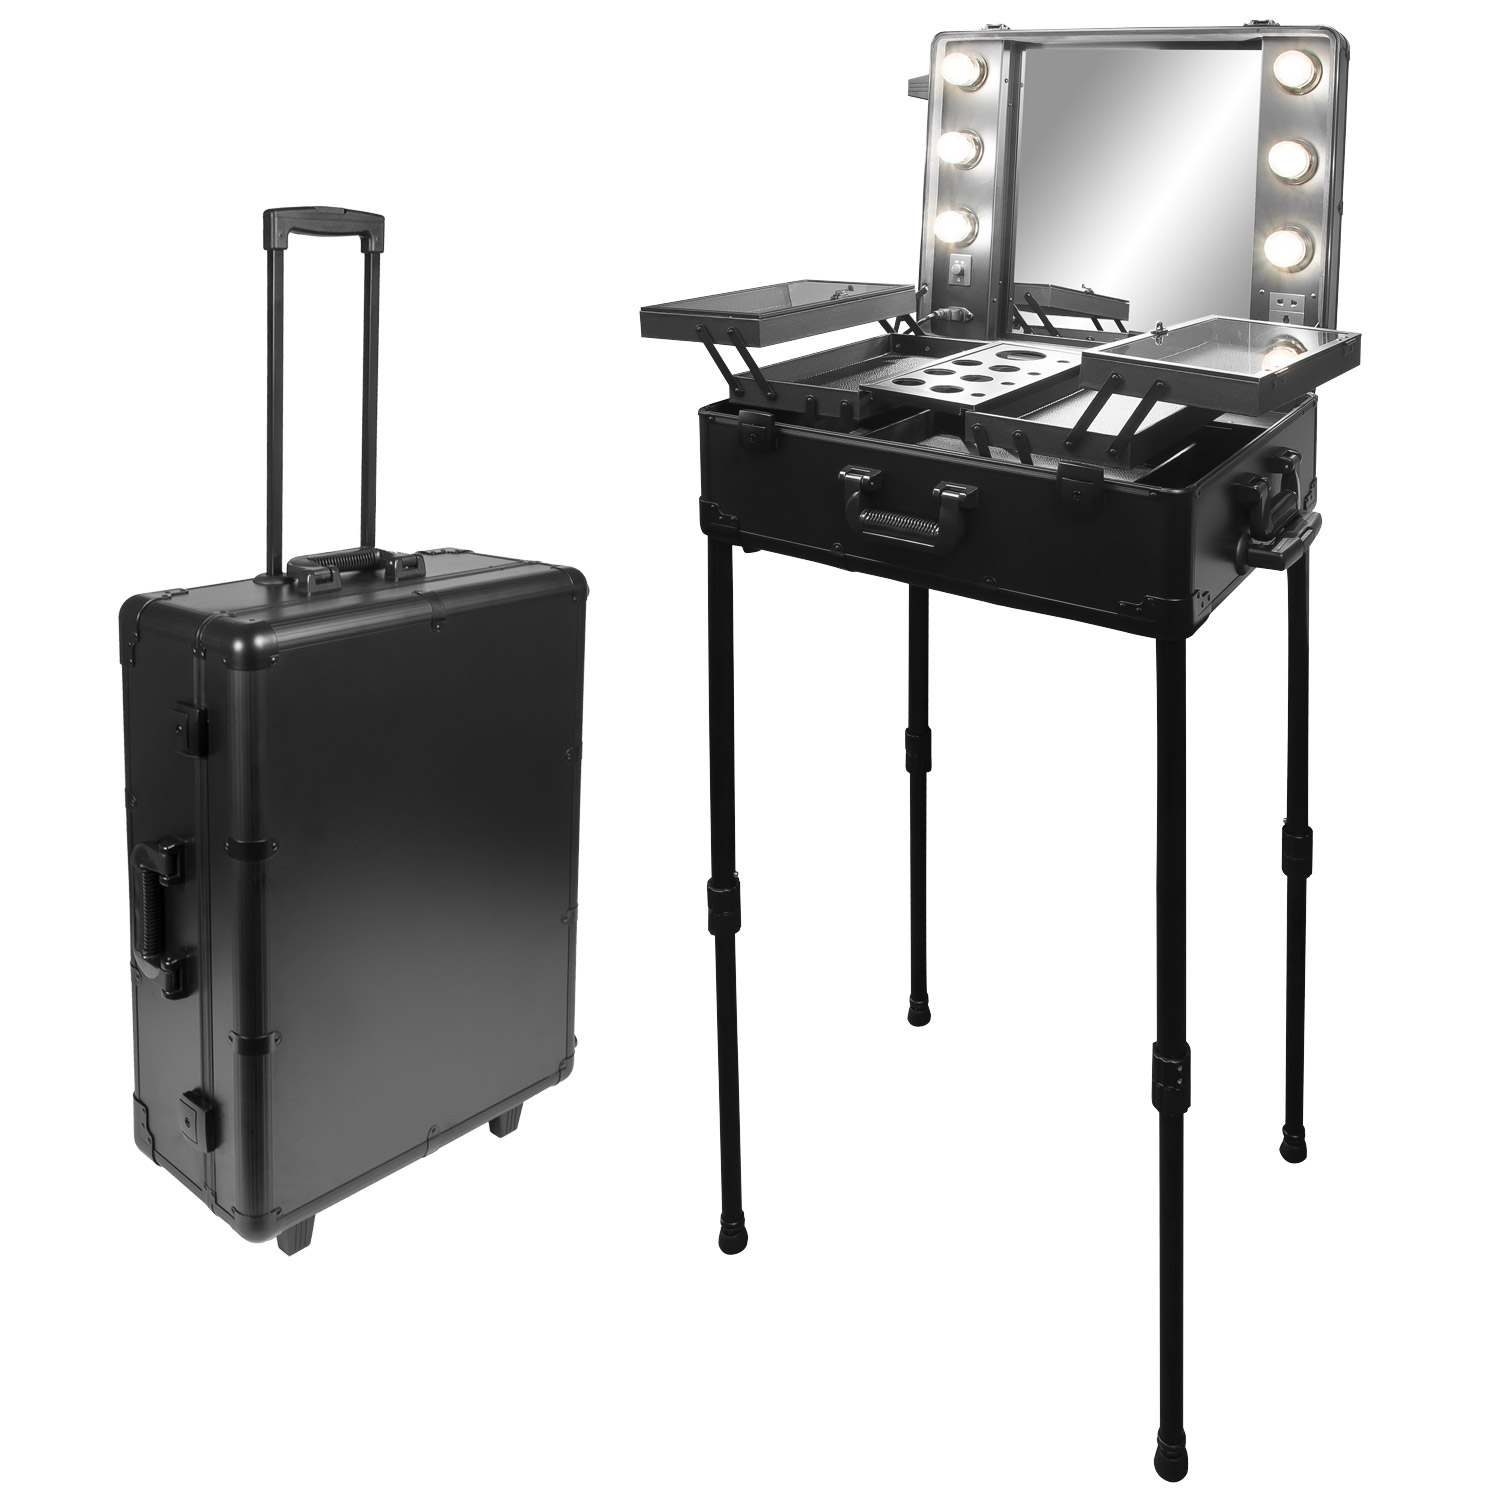 visagisten friseur kosmetik koffer trolley beleuchtung mobilesbeauty studio. Black Bedroom Furniture Sets. Home Design Ideas